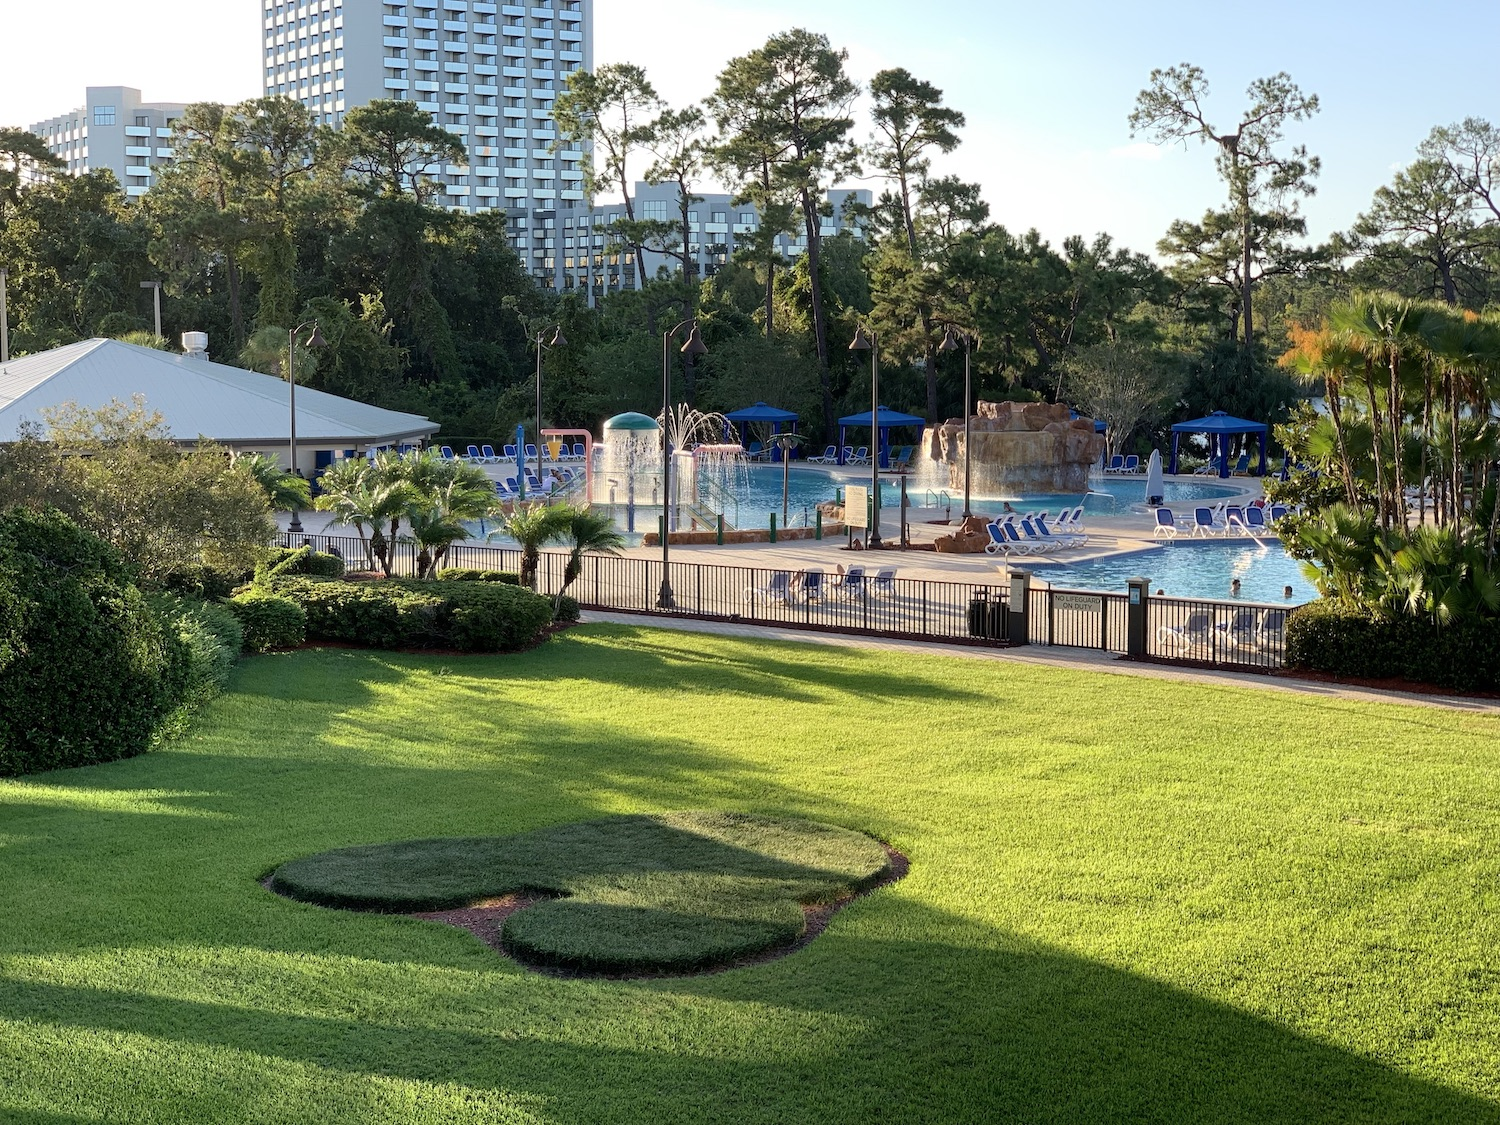 Wyndham Garden Resort in Disney Springs